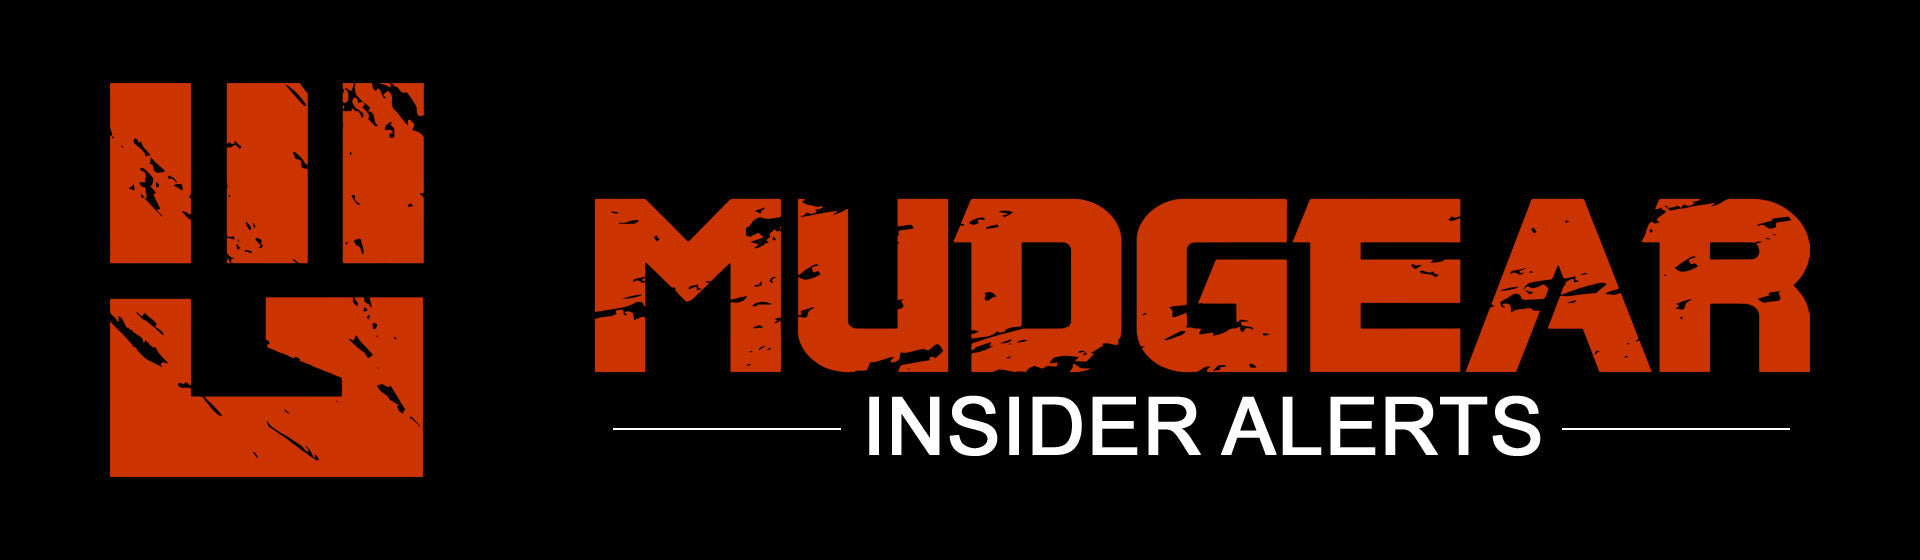 Receive MudGear Insider Alerts in Your Inbox